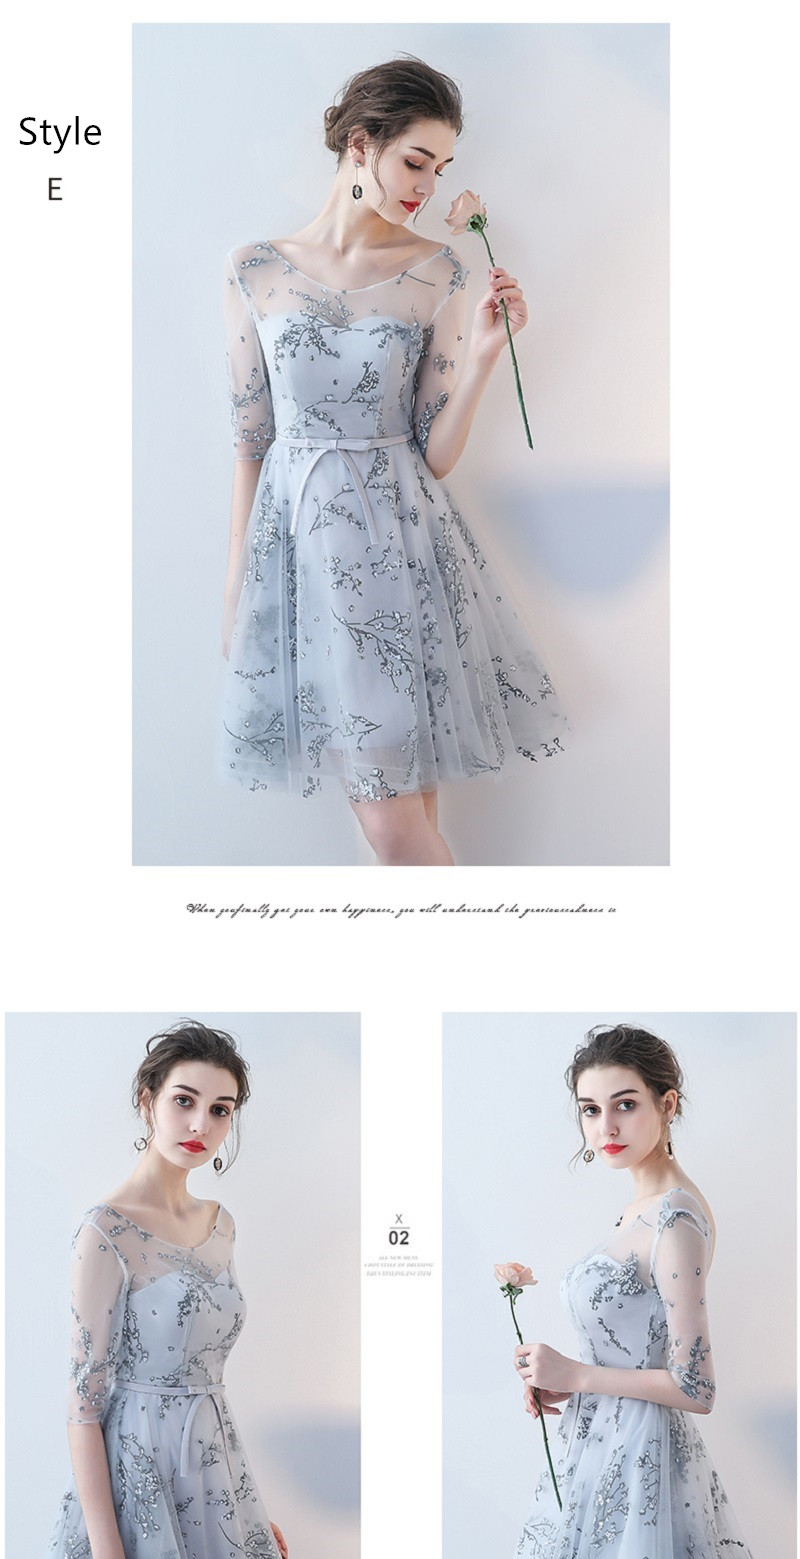 Flower Pattern Sashes Lace Knee Length Bridesmaid Dress 12